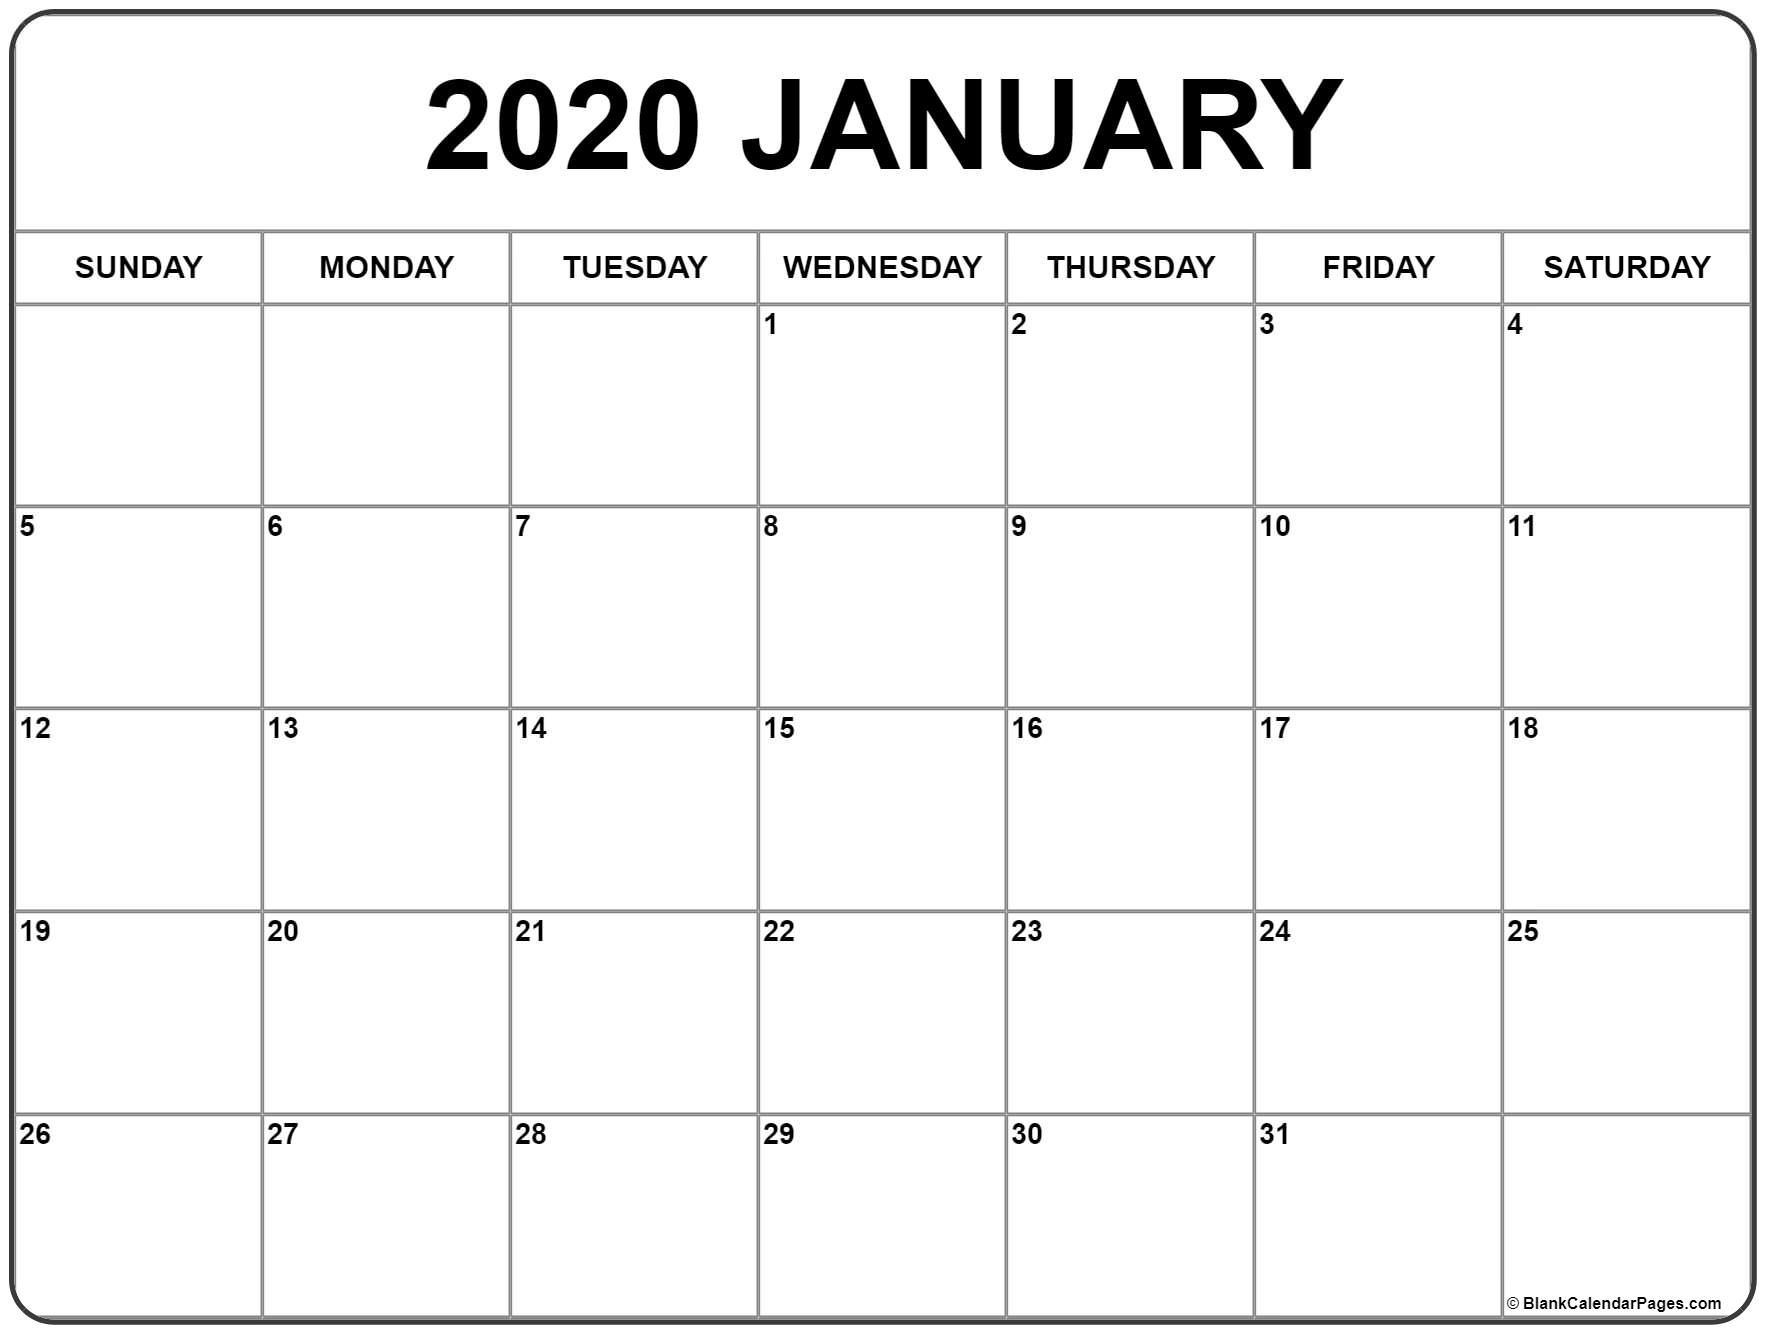 January 2020 Calendar | Free Printable Monthly Calendars-January 2020 Calendar With Holidays Printable